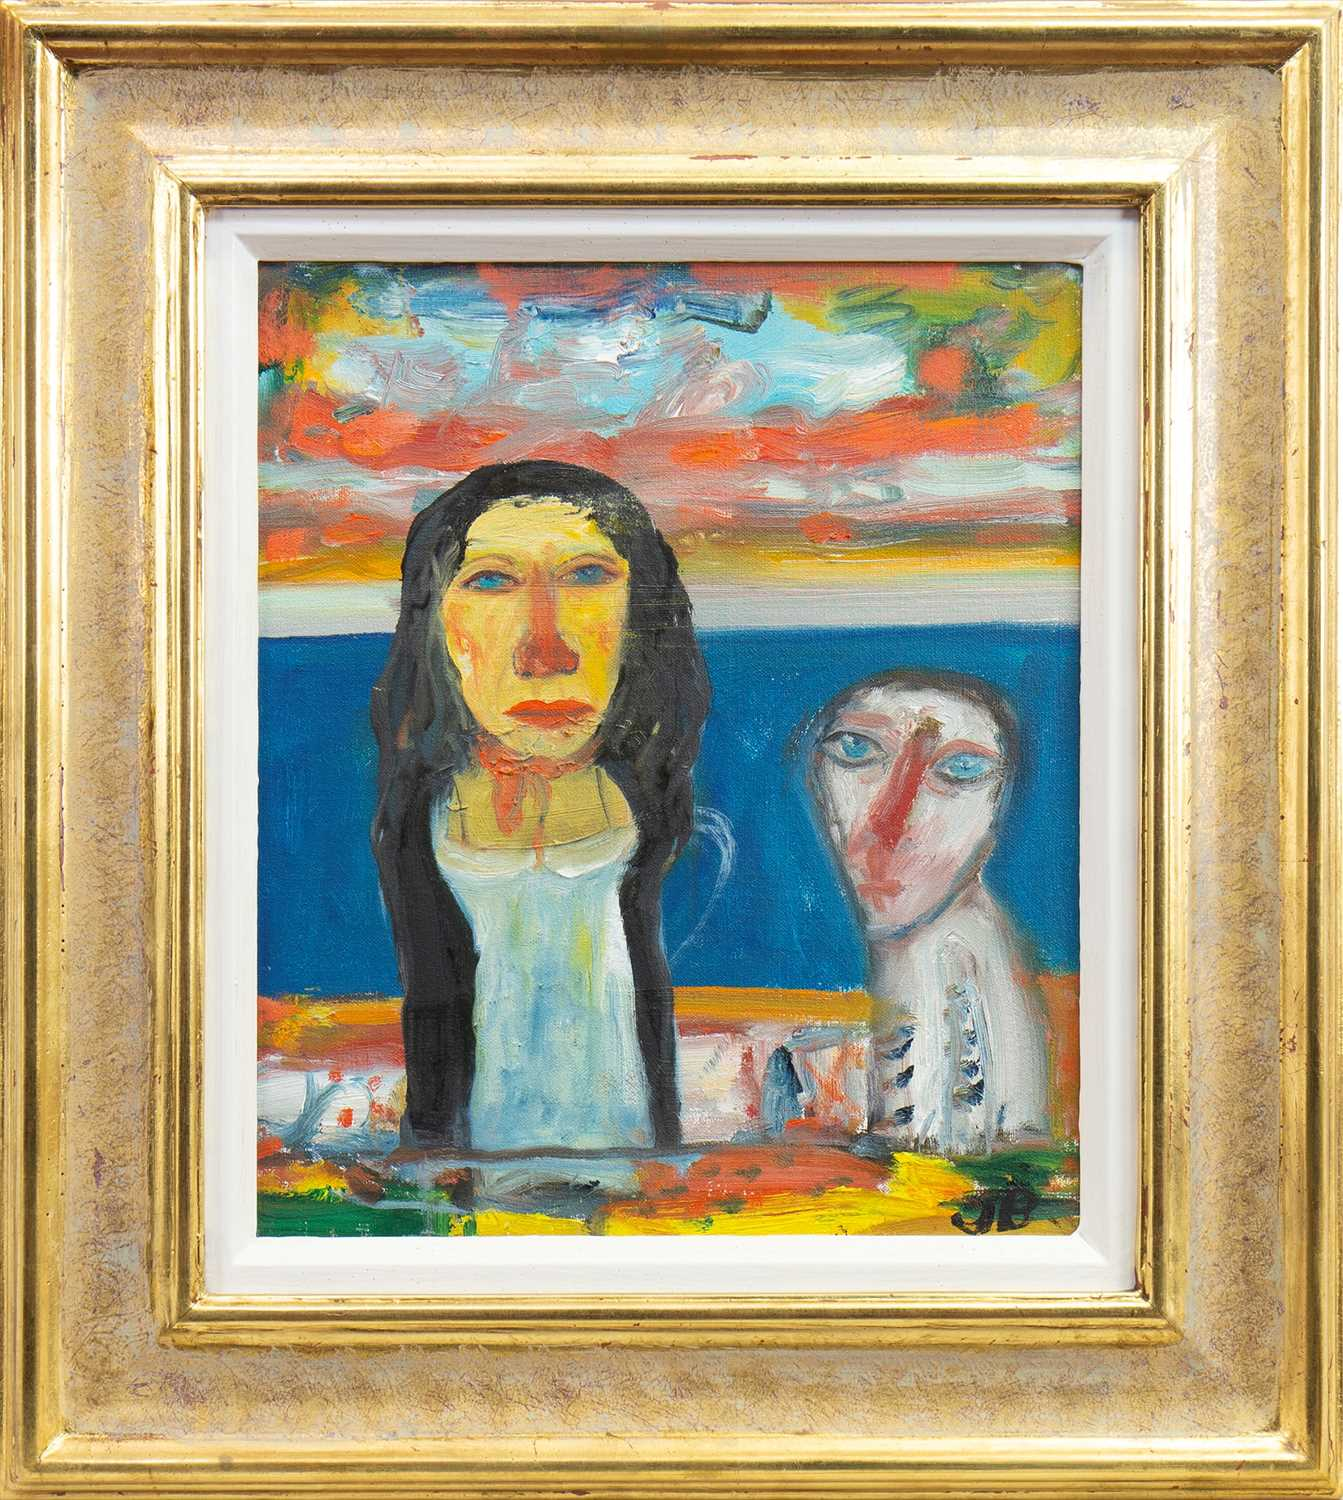 Lot 515-THE SEER, AN OIL BY JOHN BELLANY